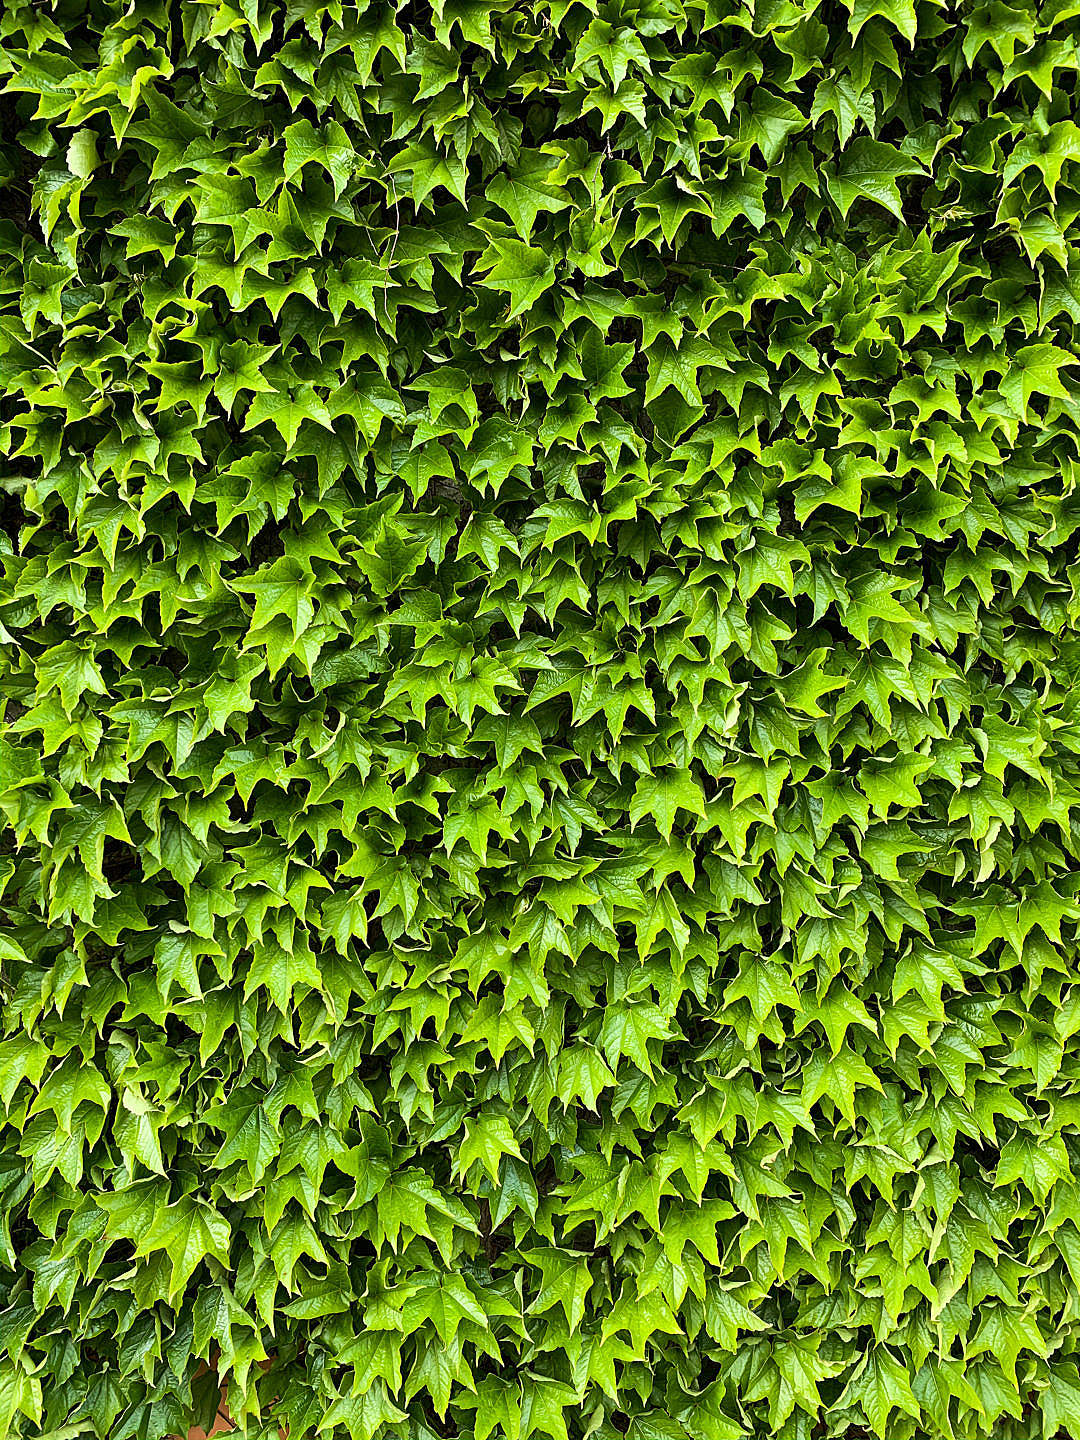 Download Green Ivy Texture Vertical FREE Stock Photo